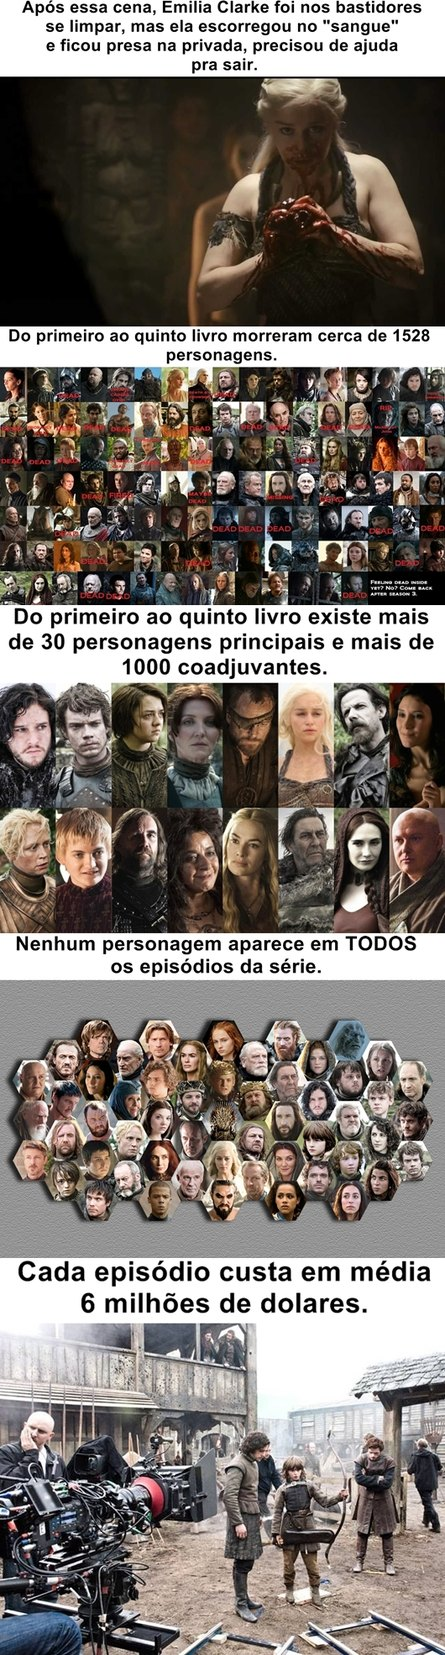 Curiosidades Game of Thrones pt. 3 - meme